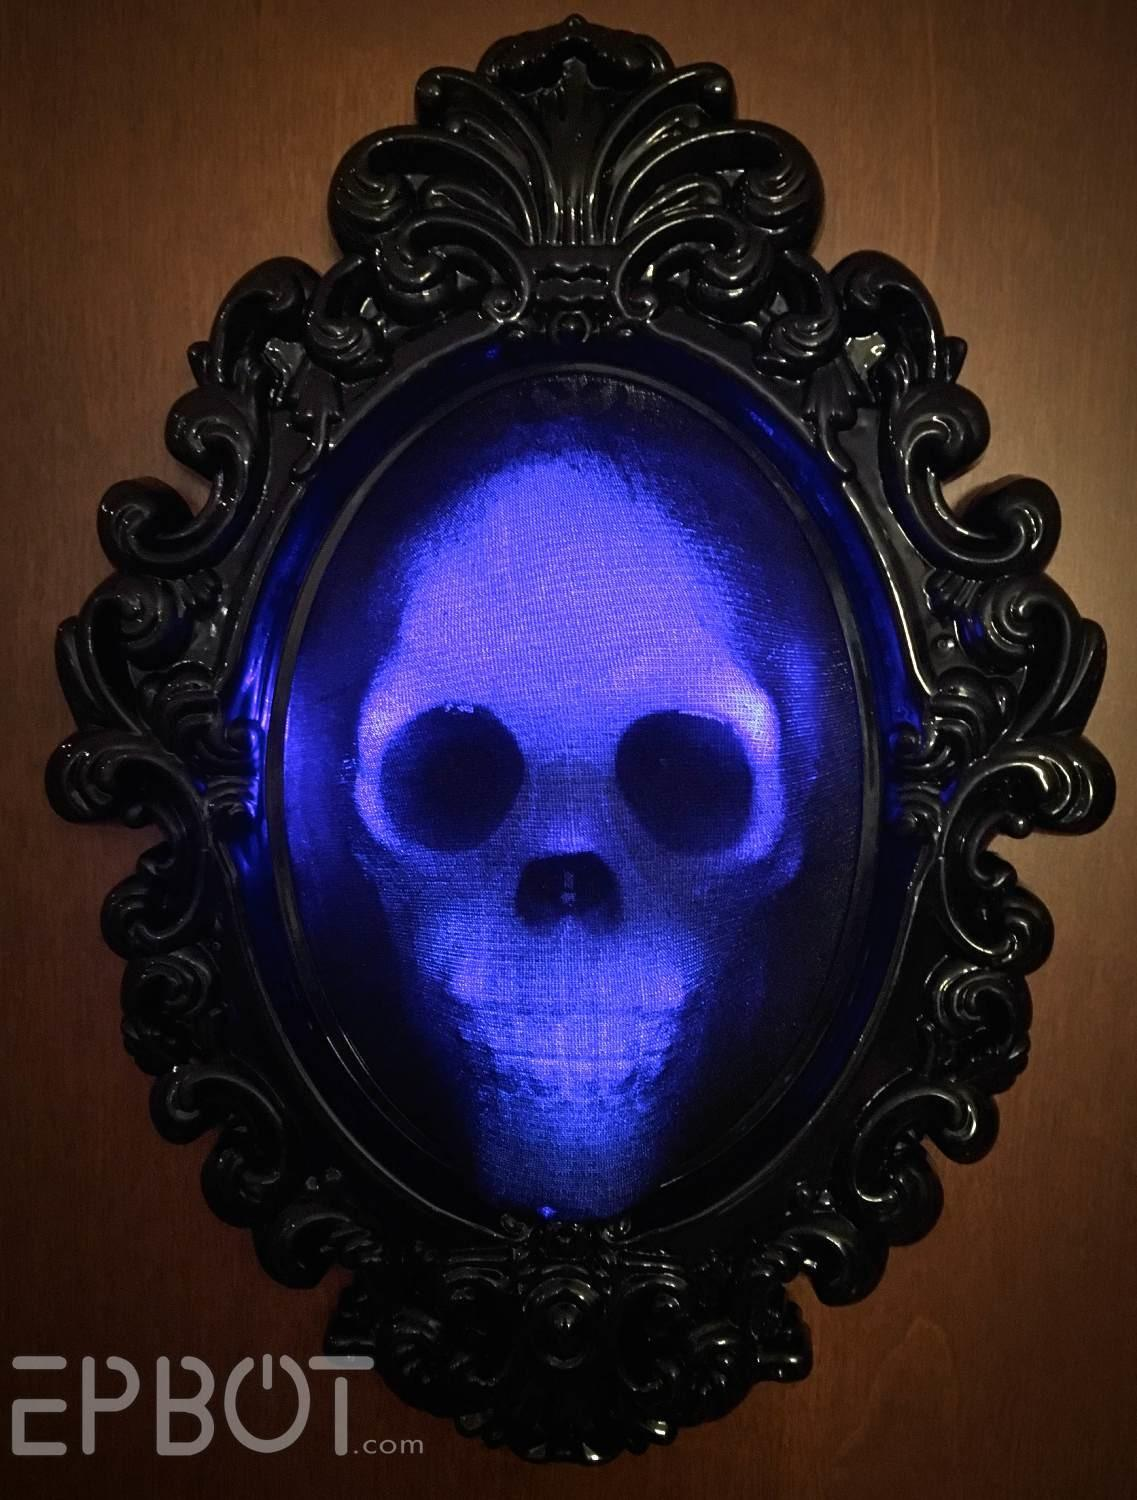 Epbot Halloween Quick Craft Spooky Glowing Skull Frame